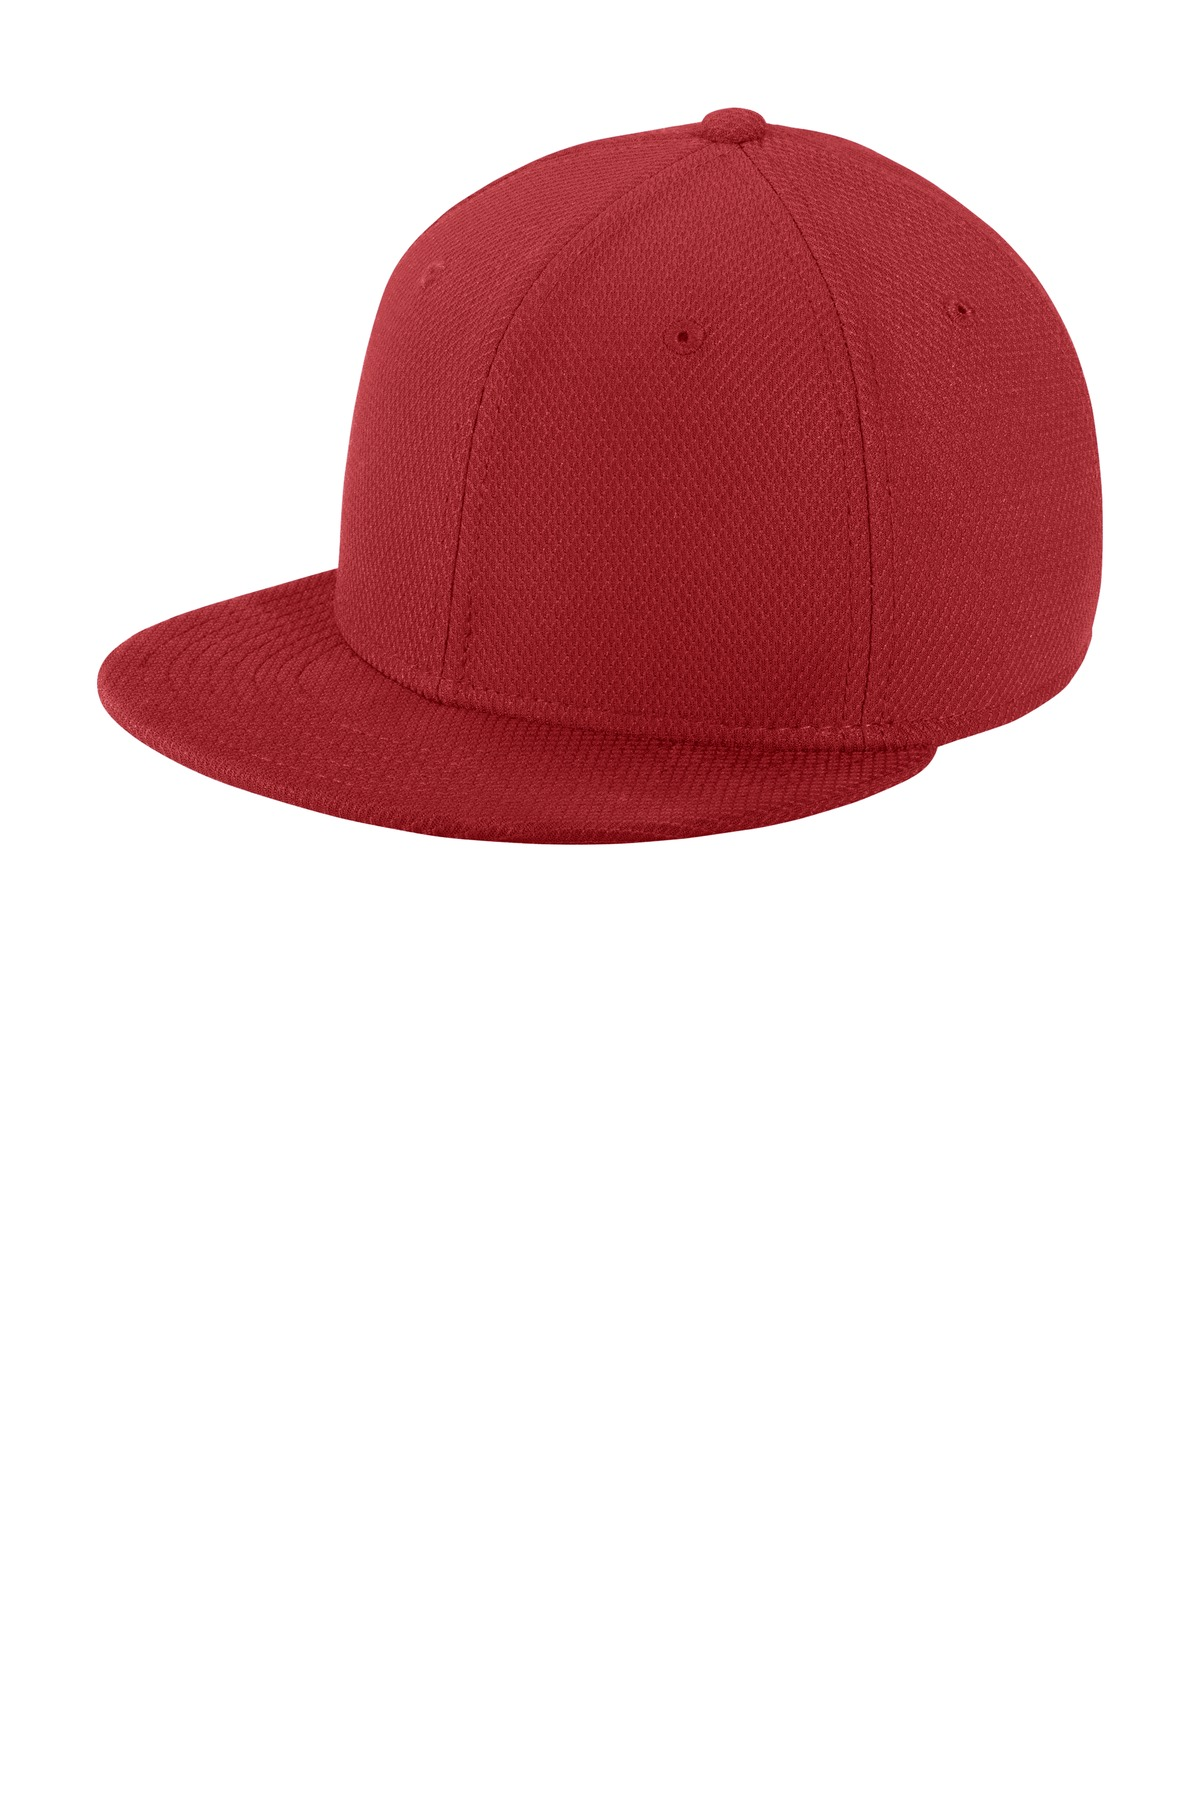 New Era  ®  Youth Original Fit Diamond Era Flat Bill Snapback Cap. NE304 - Crimson